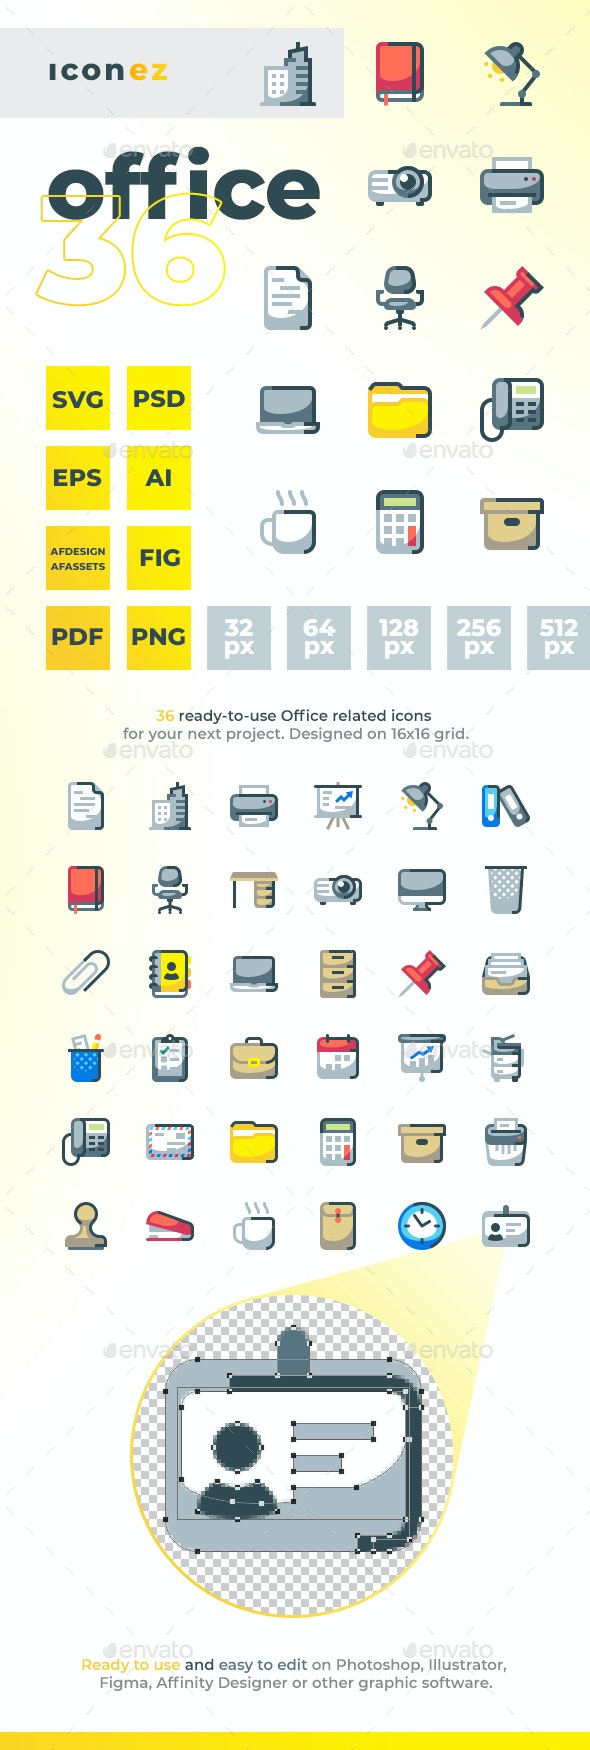 Iconez - Office - Objects Icons